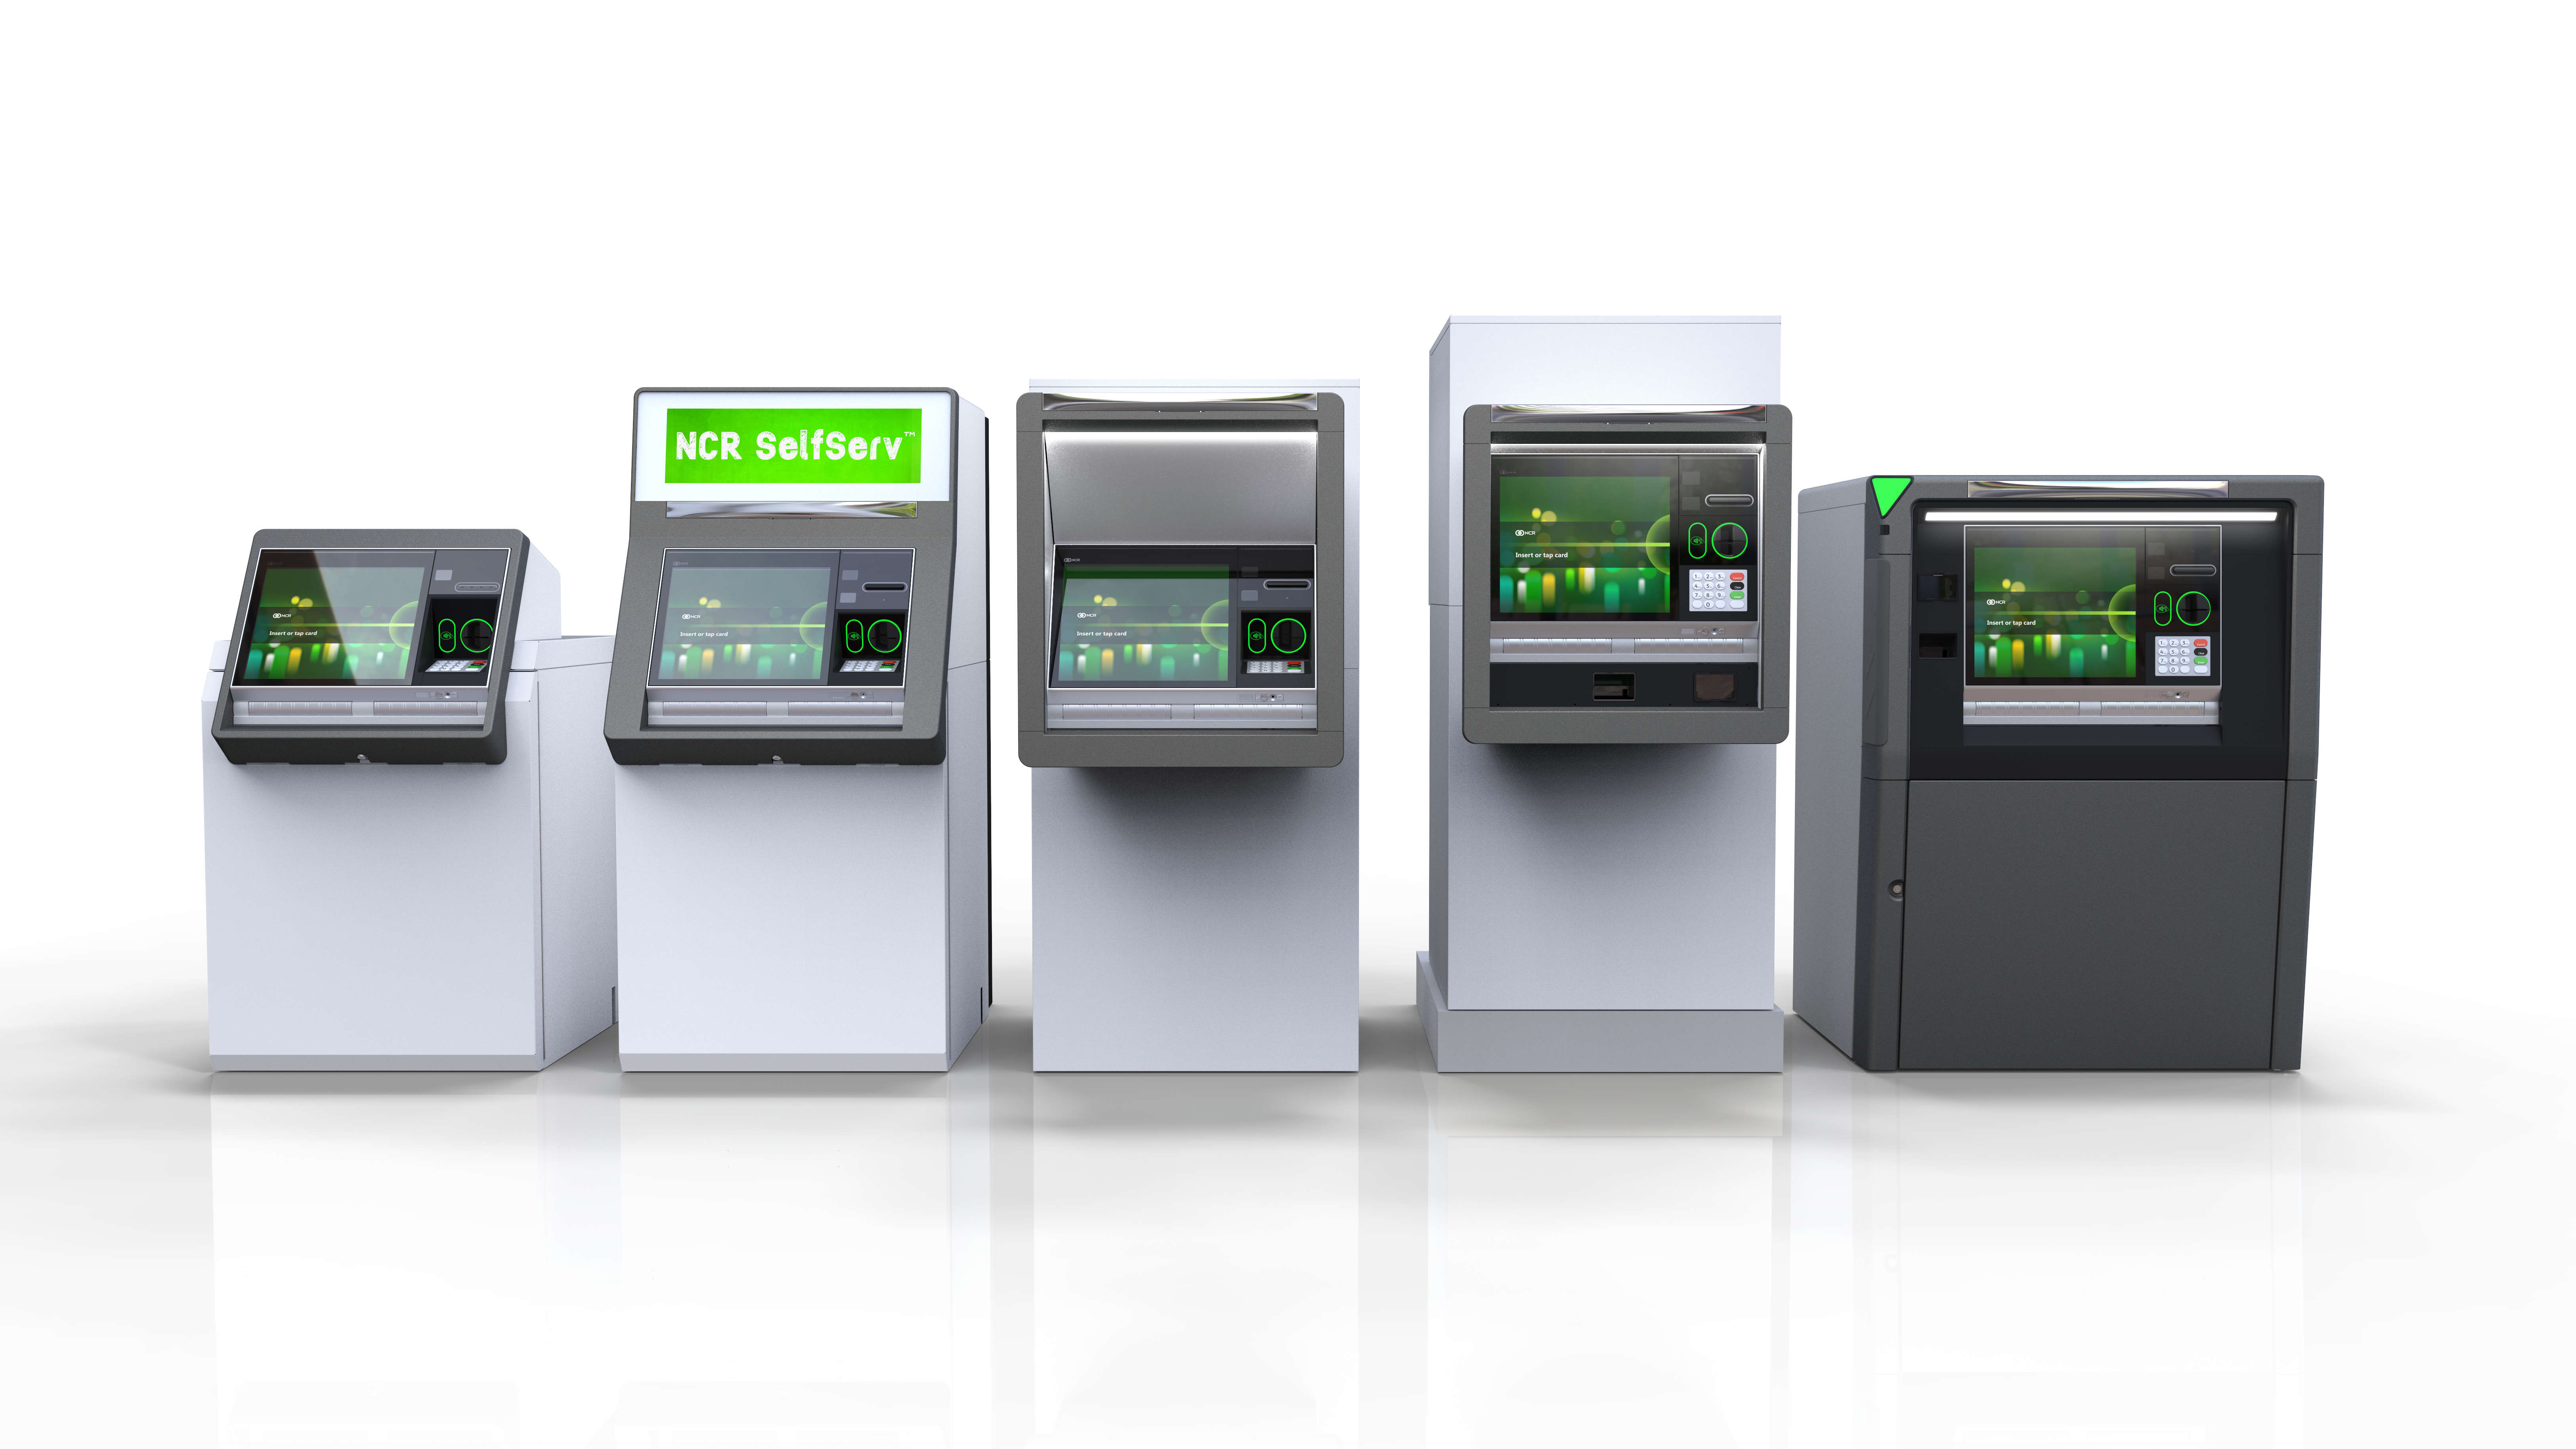 NCR's new ATM